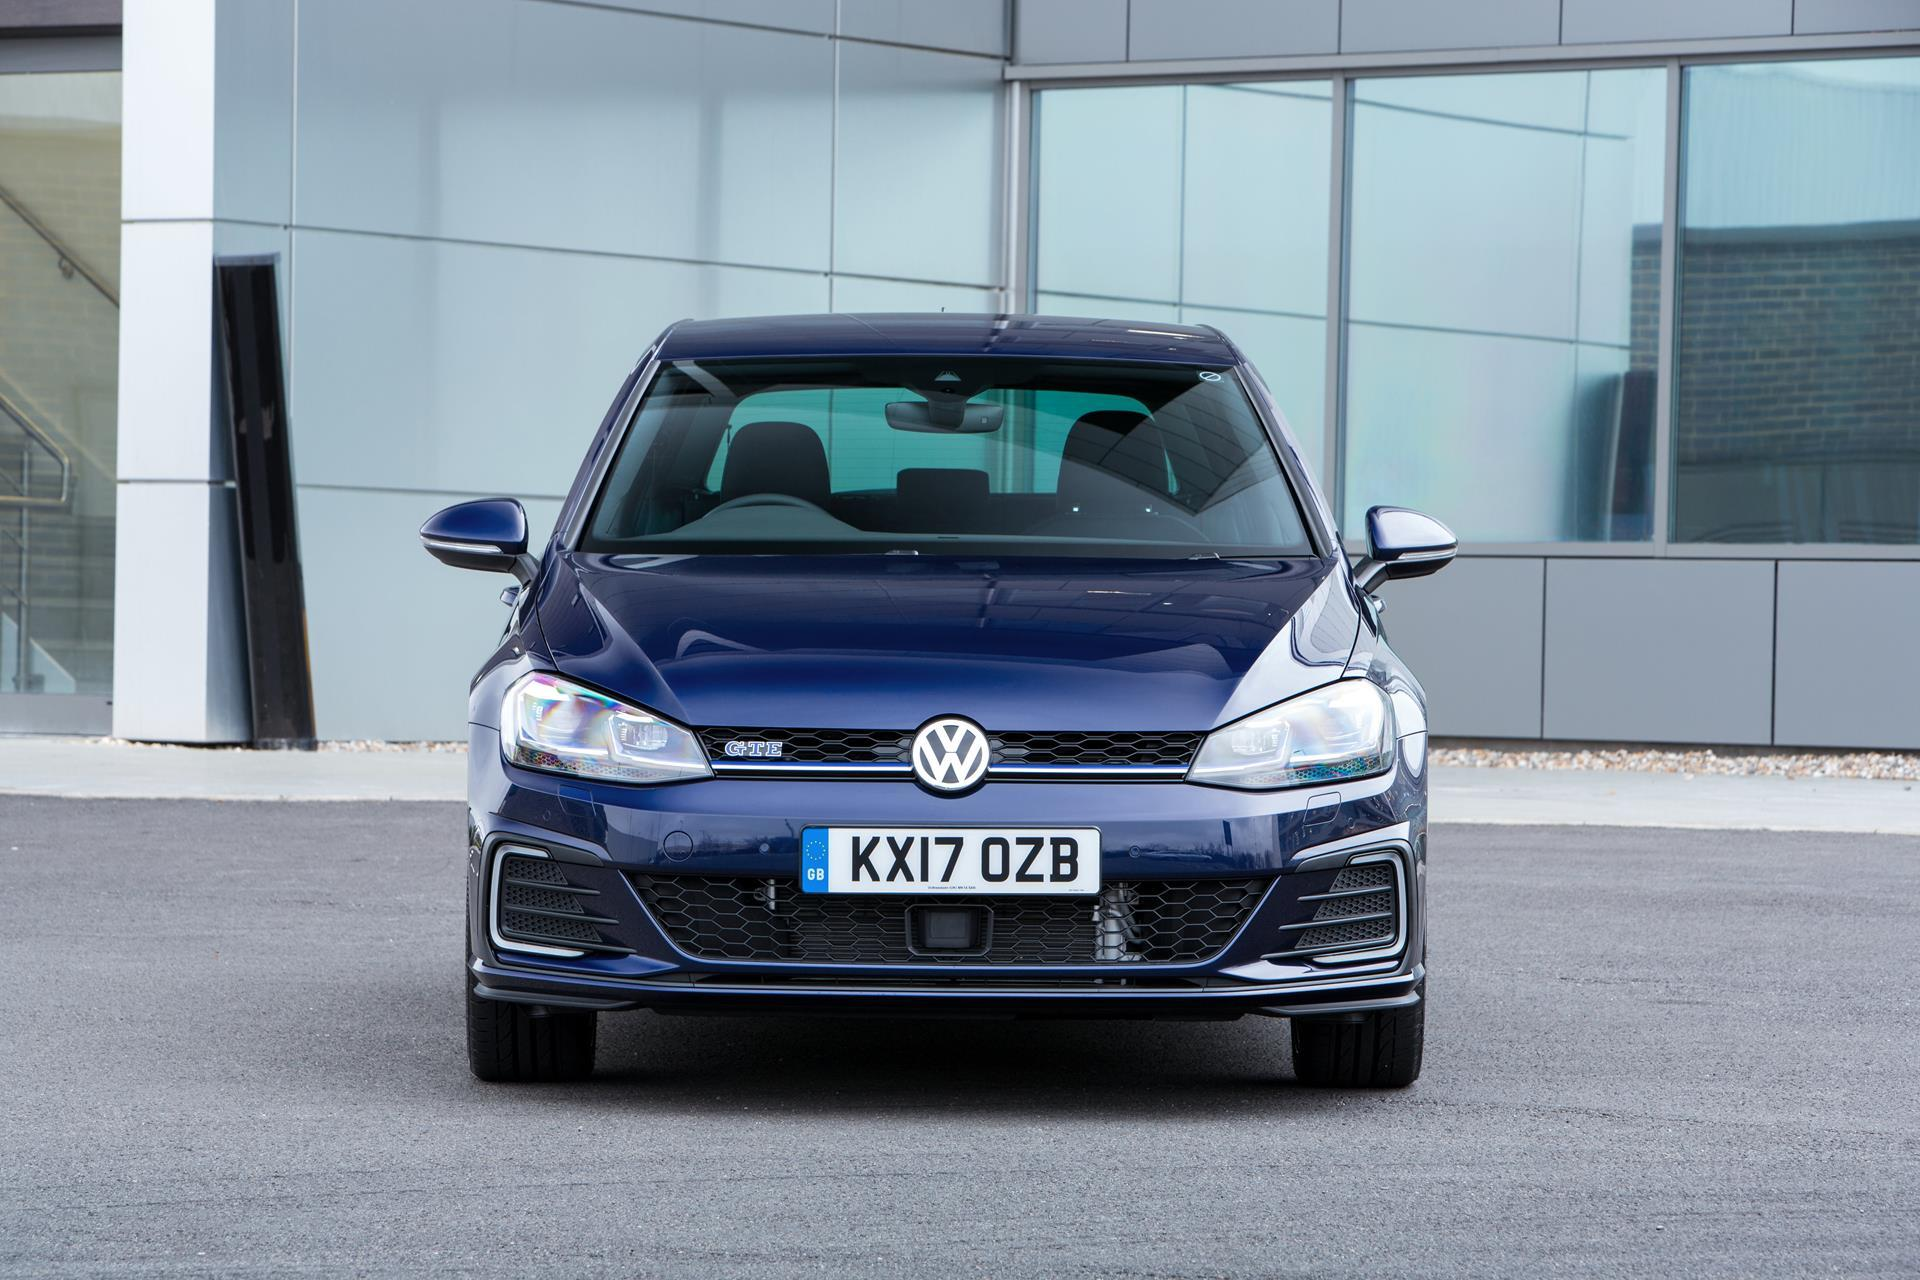 2017 Volkswagen Golf Gte News And Information Com